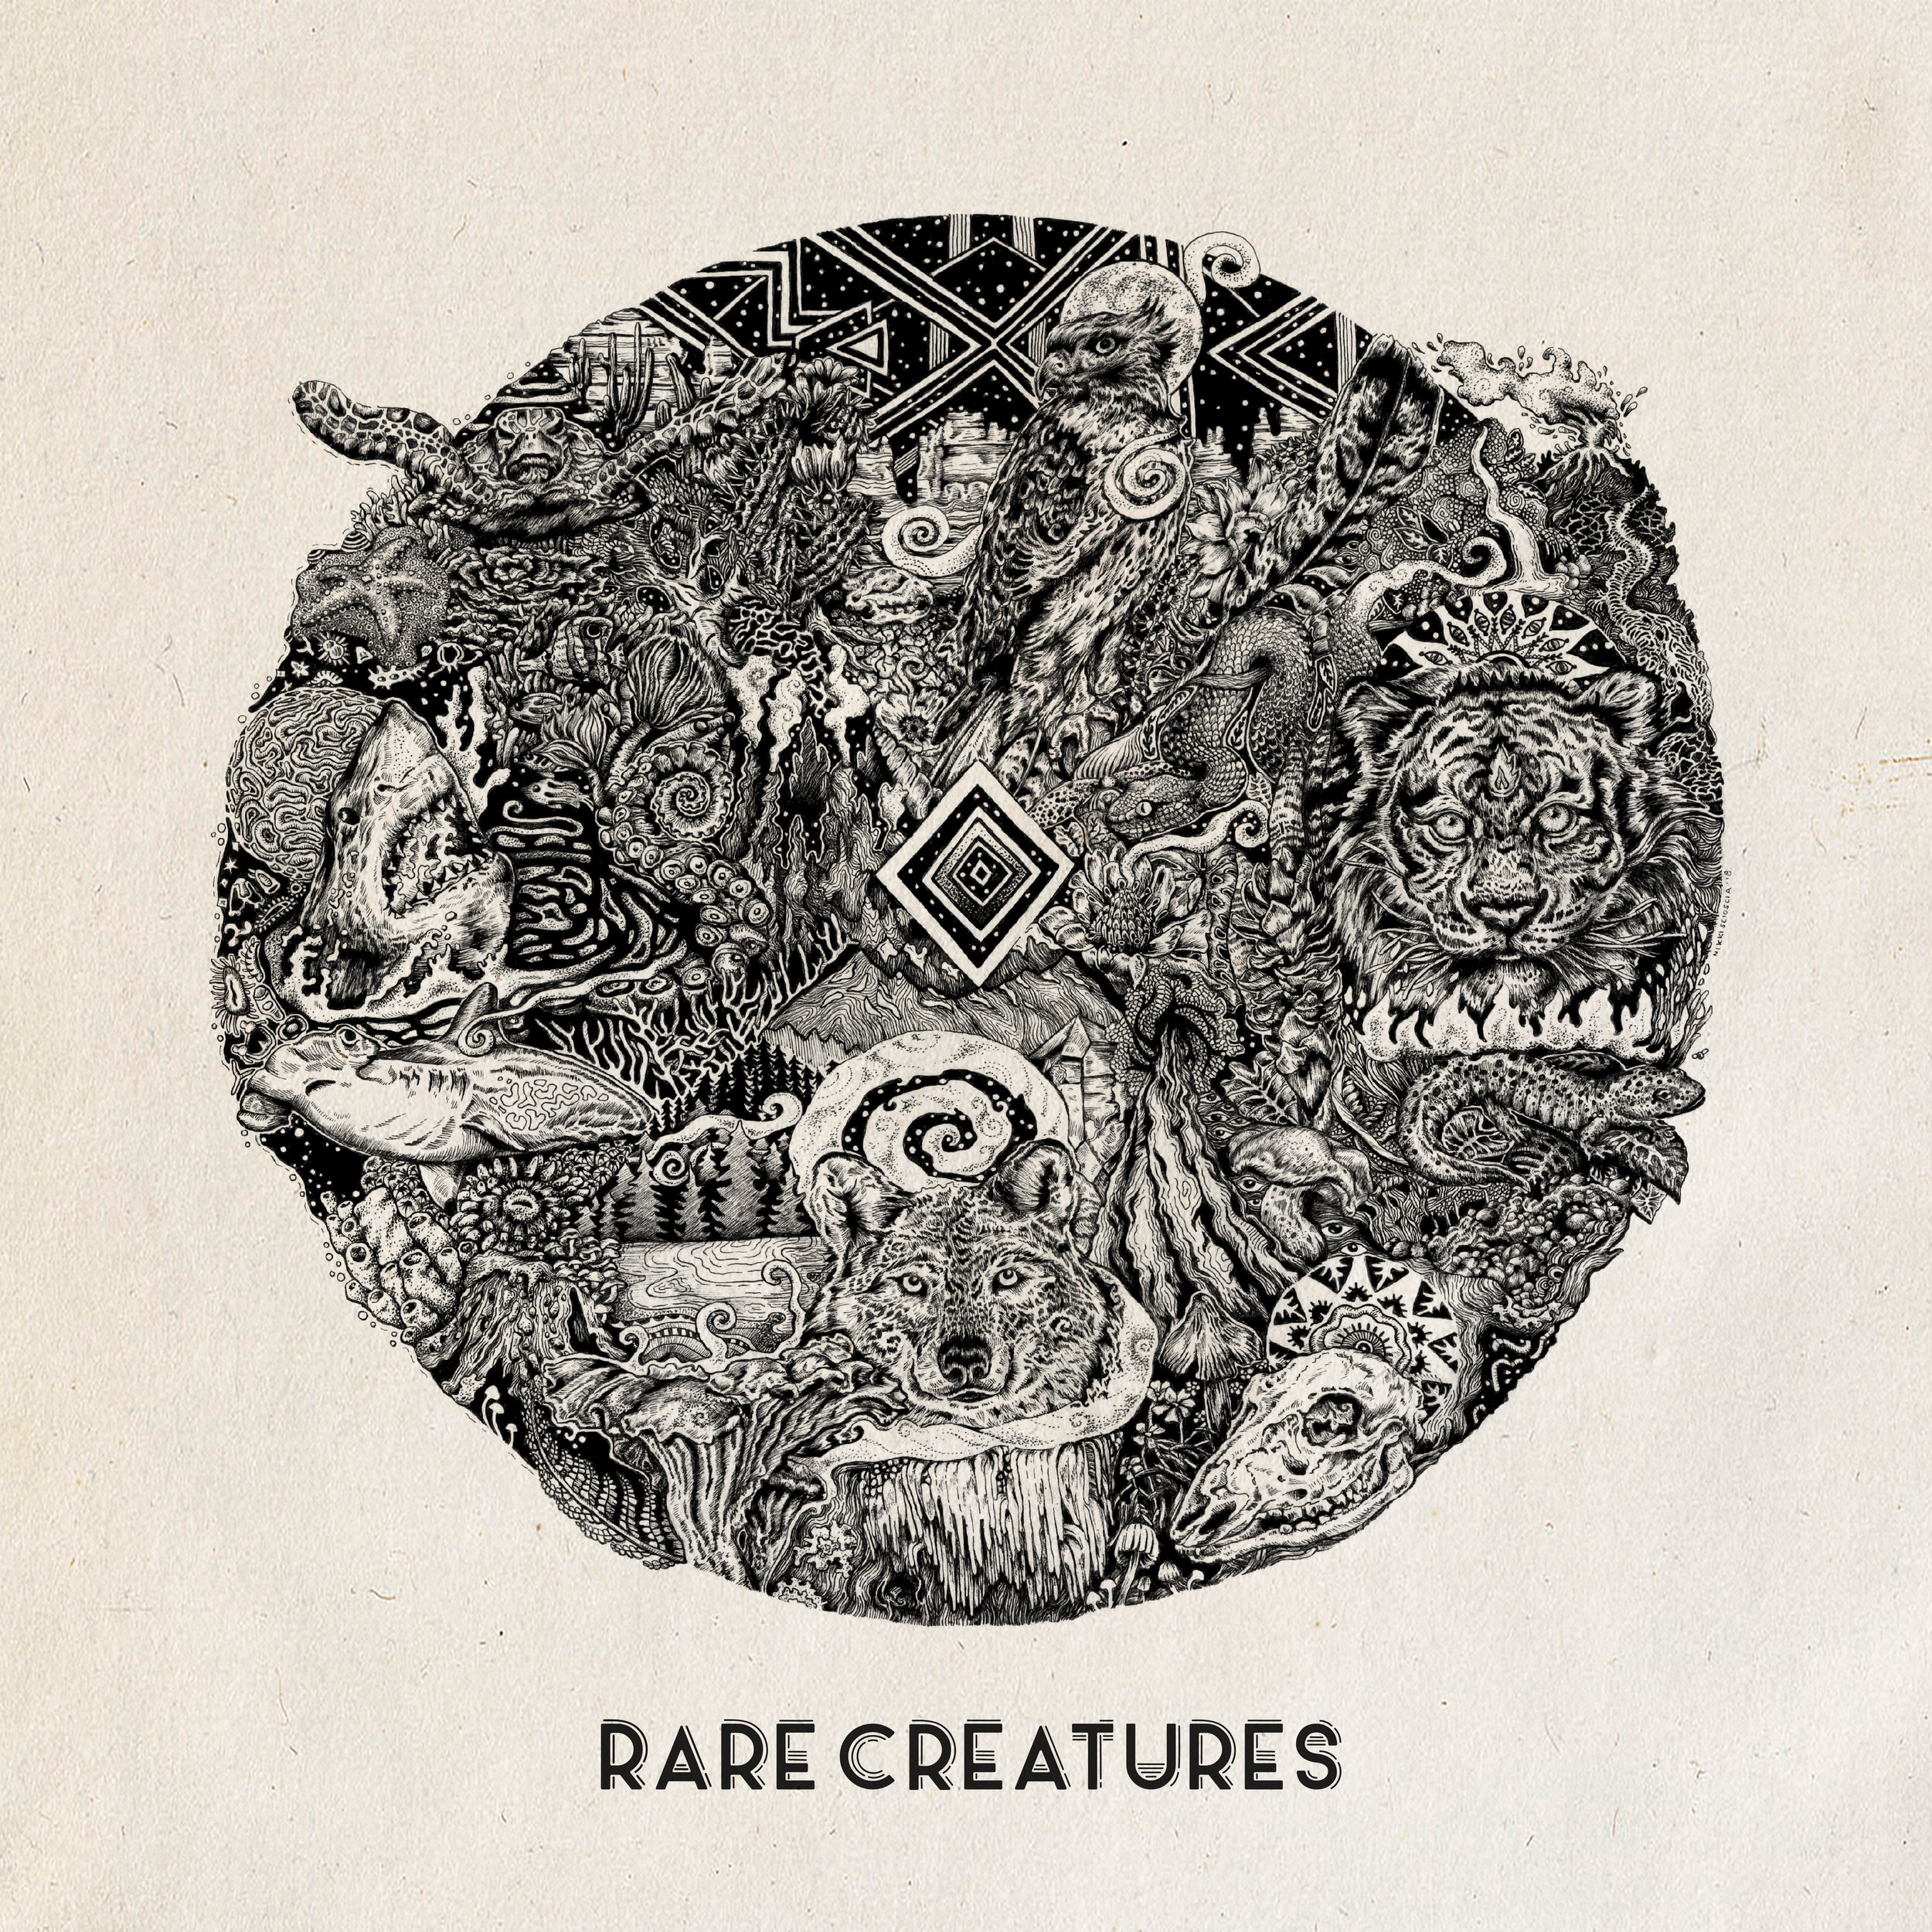 Rare Creatures - Self-Titled Debut Album Producer/Engineer/Mixing